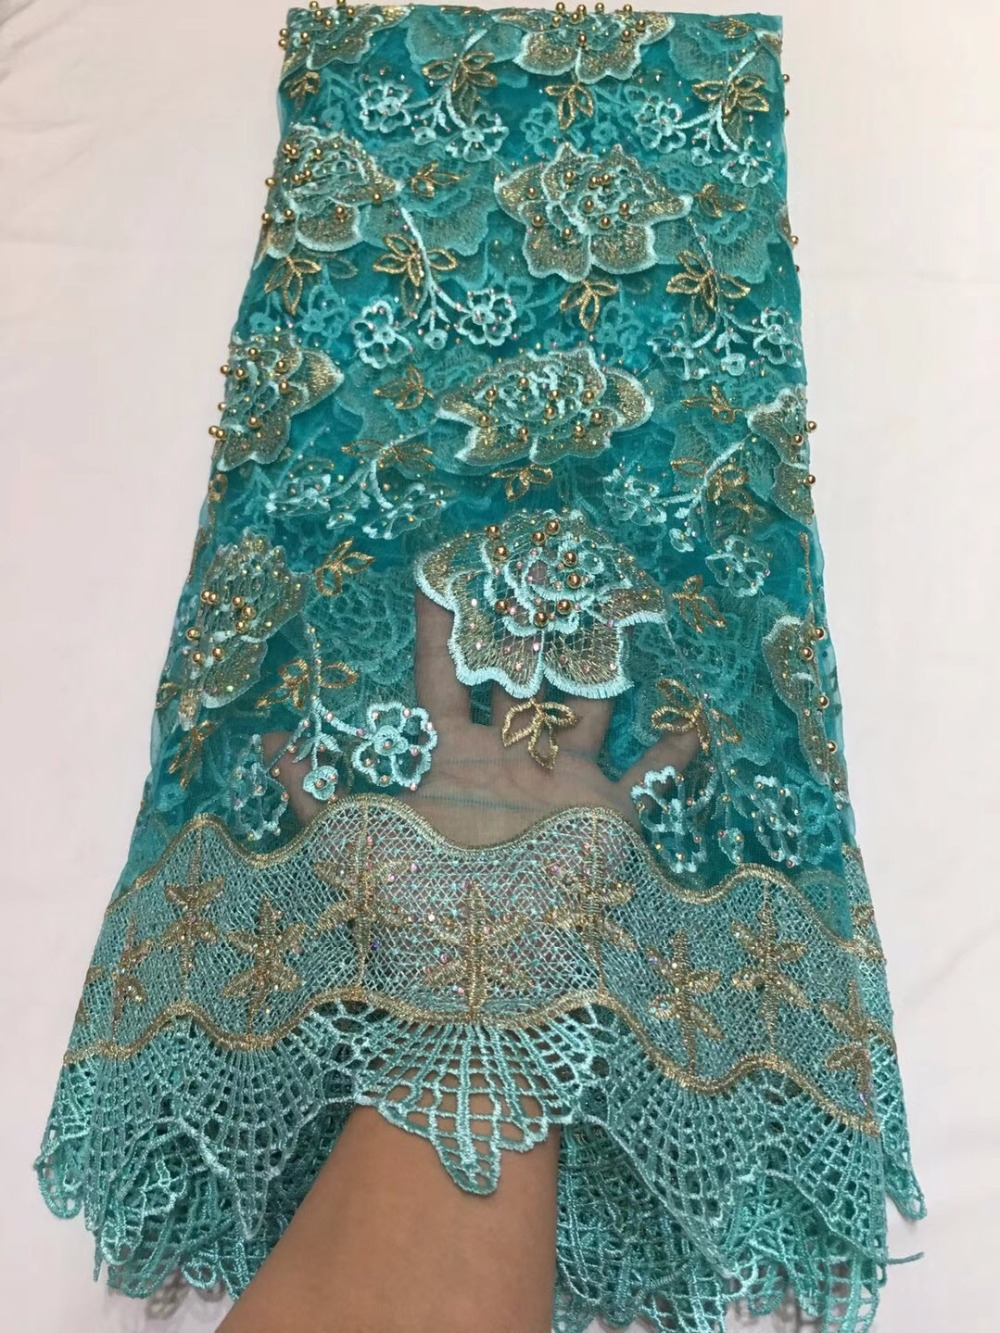 green African Laces Fabric Embroidered Nigerian Guipure French Lace Fabric High Quality 2018 African French Net Lace Fabricgreen African Laces Fabric Embroidered Nigerian Guipure French Lace Fabric High Quality 2018 African French Net Lace Fabric